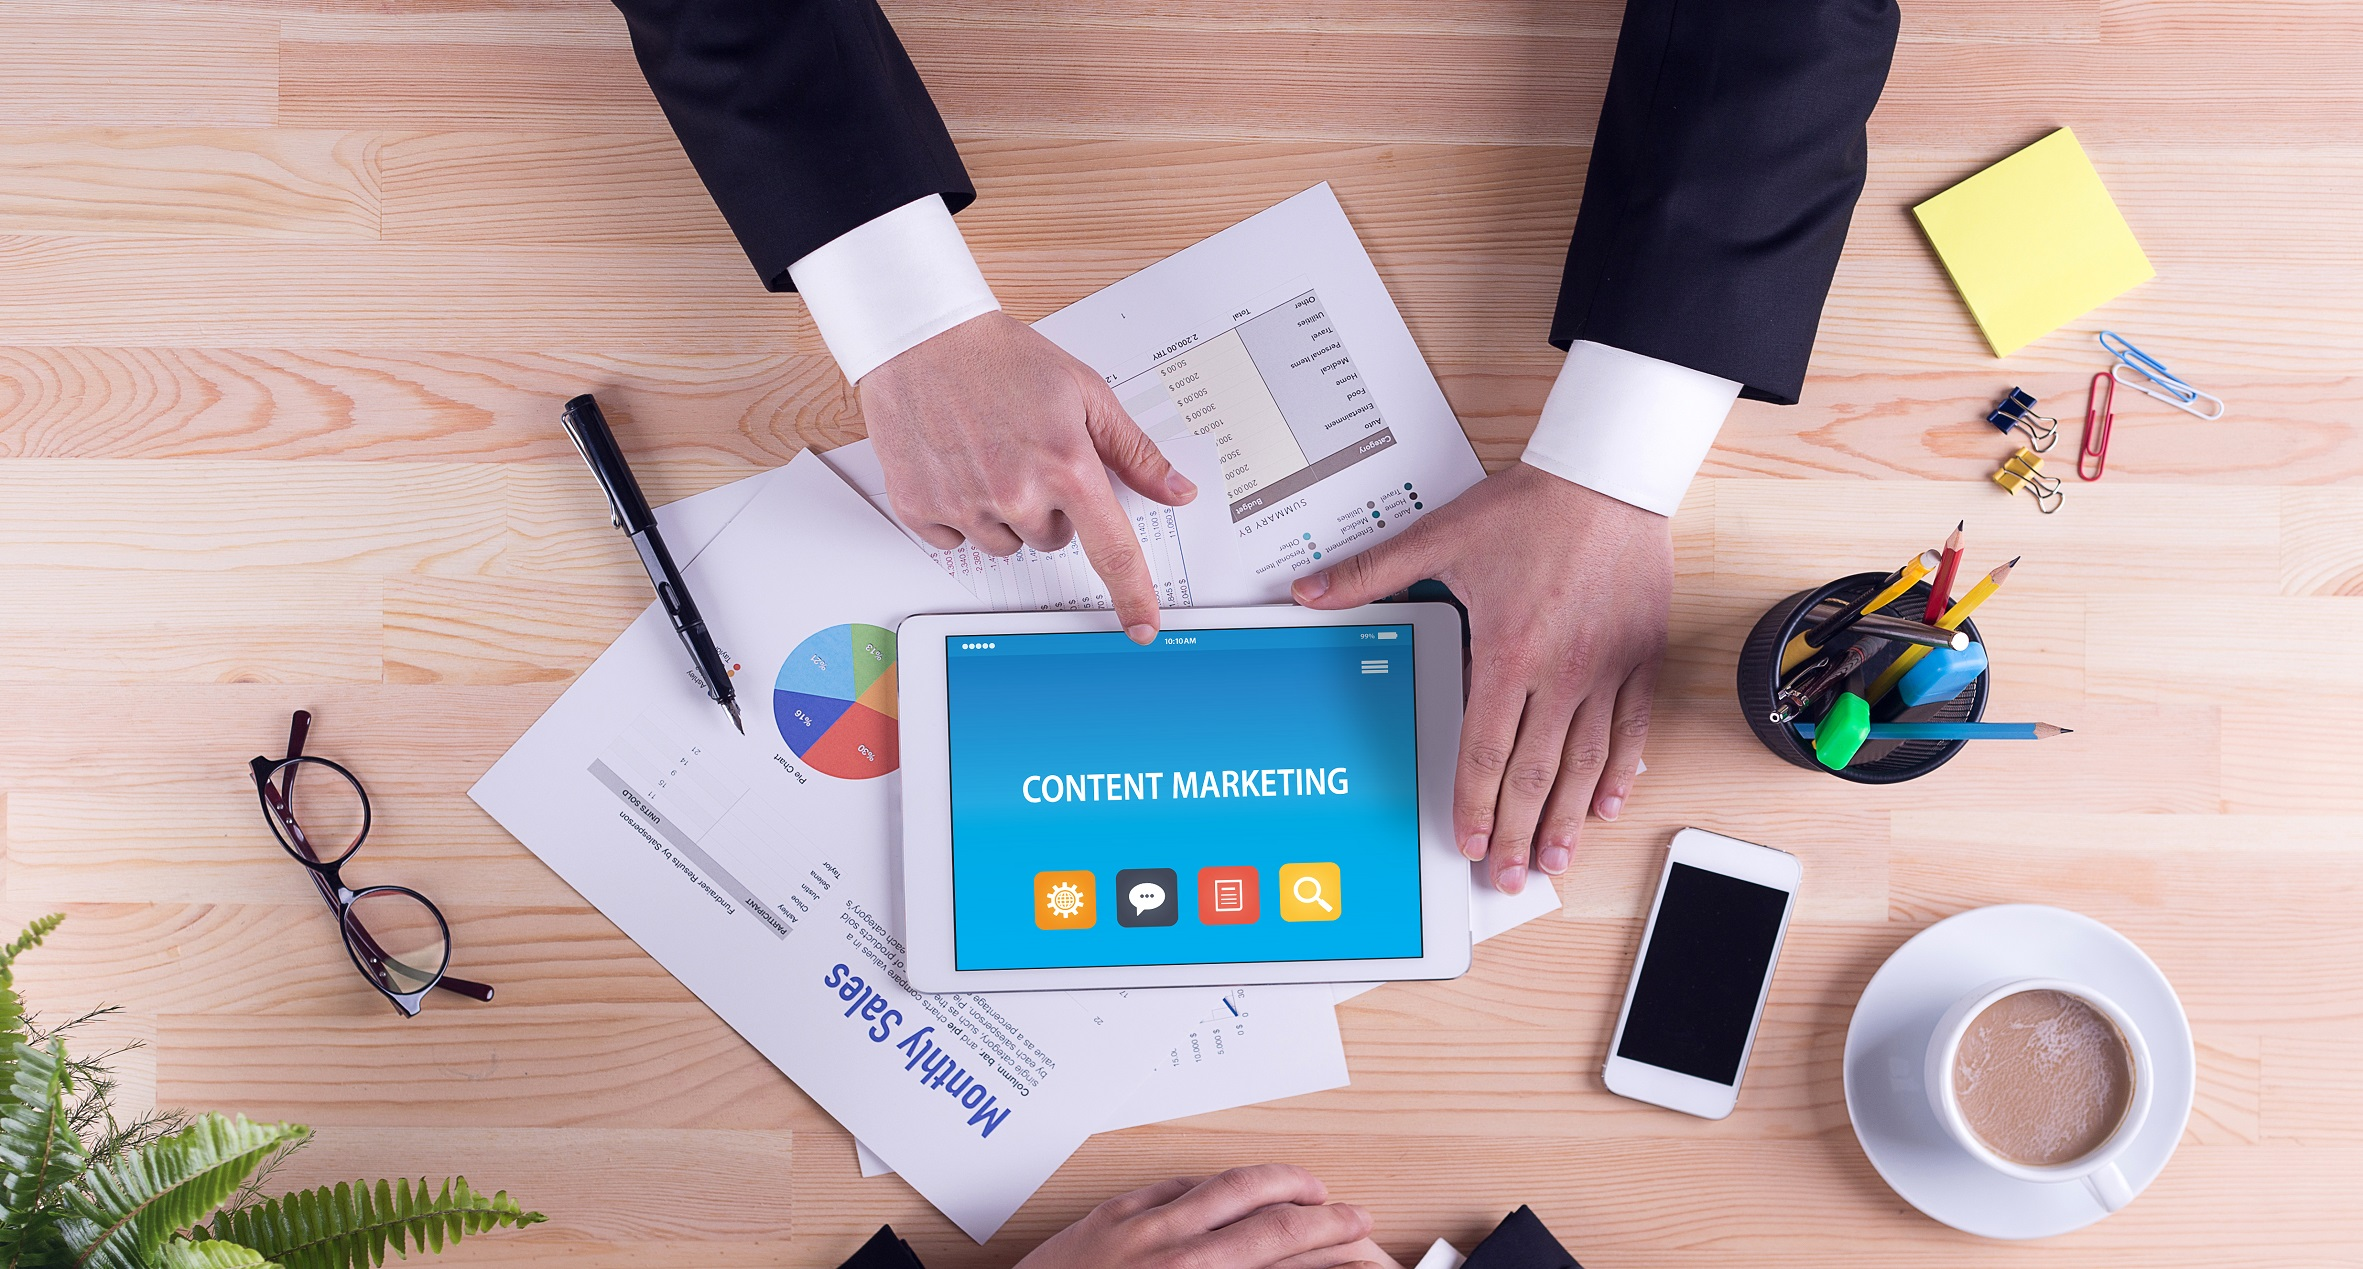 5 metriche da monitorare per misurare le performance di una Content Marketing strategy